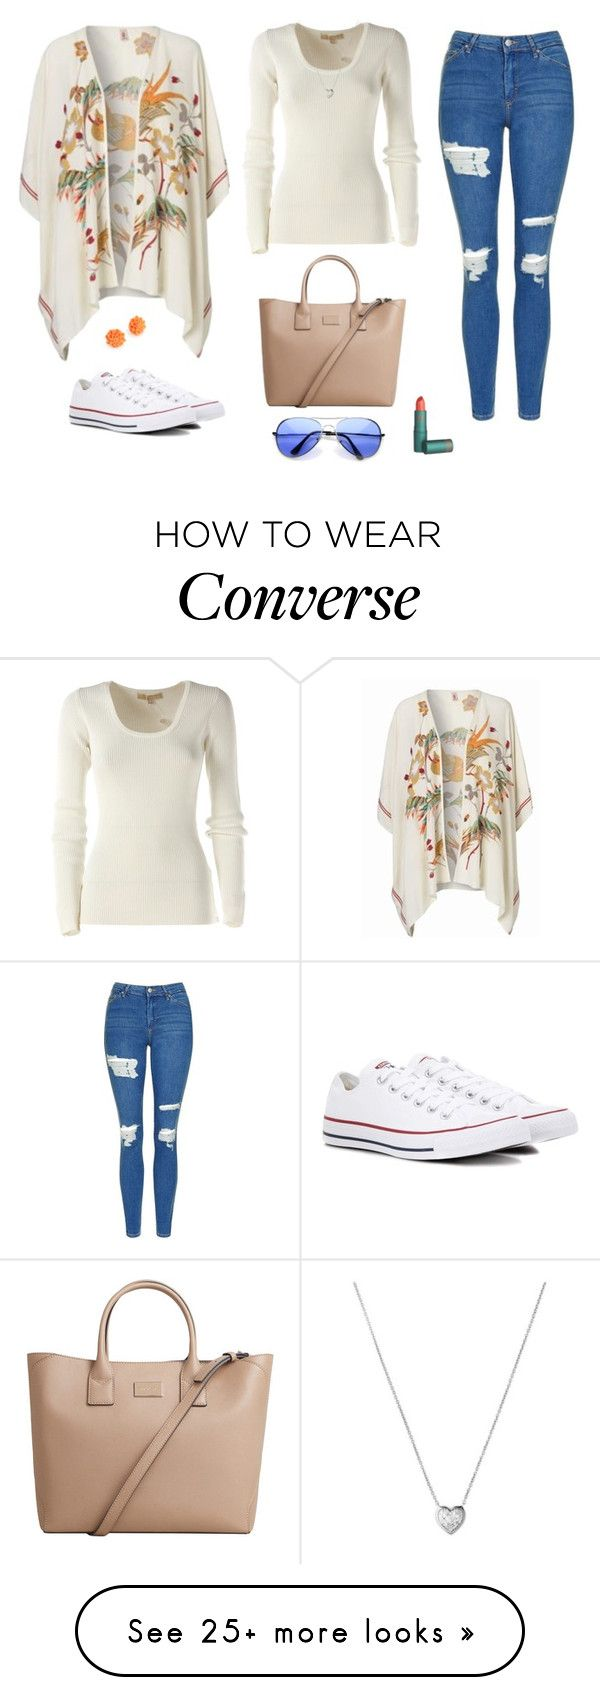 """Untitled #1366"" by alex-gucka on Polyvore featuring Michael Kors, Topshop, BeckSöndergaard, Converse, MANGO and Links of London"